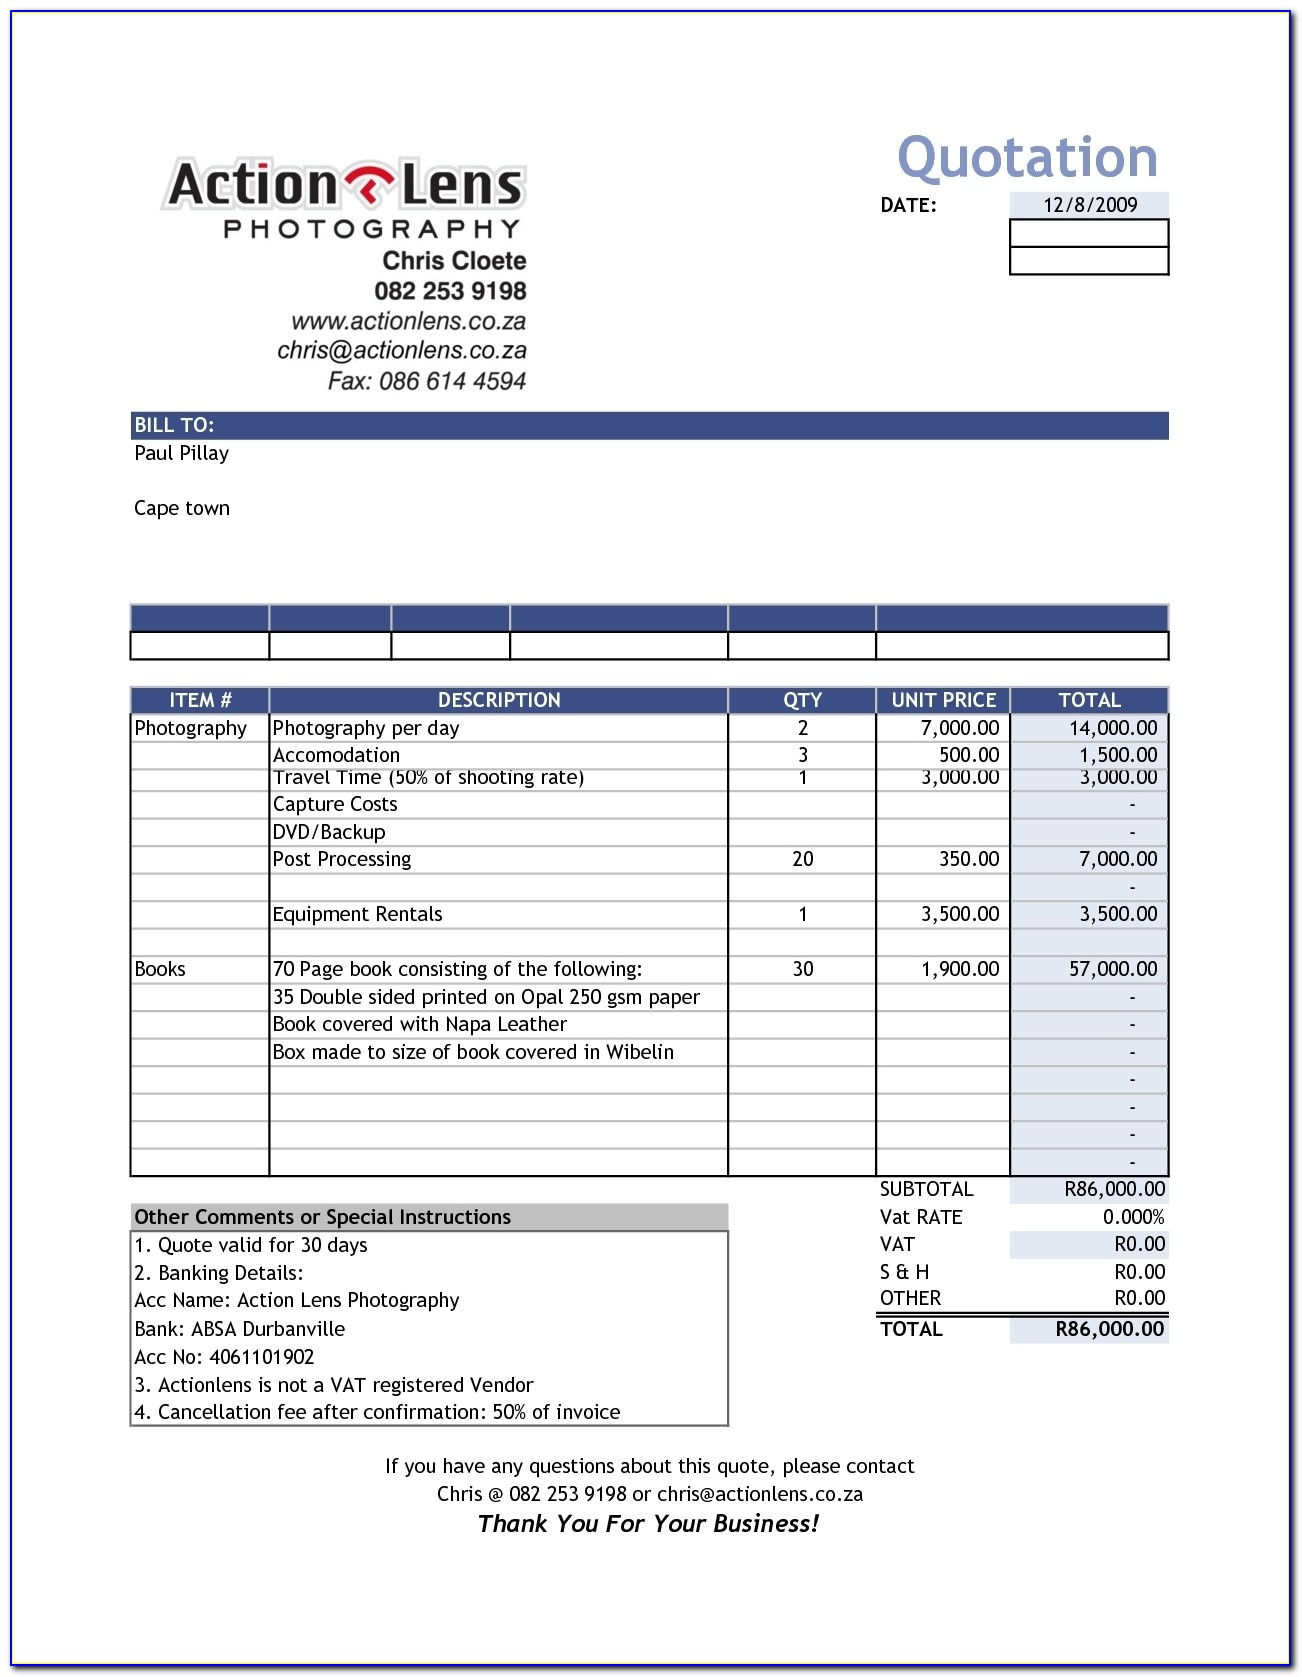 Sale Invoice Format In Excel Free Download Invoice Template Free Invoice Format Dnh